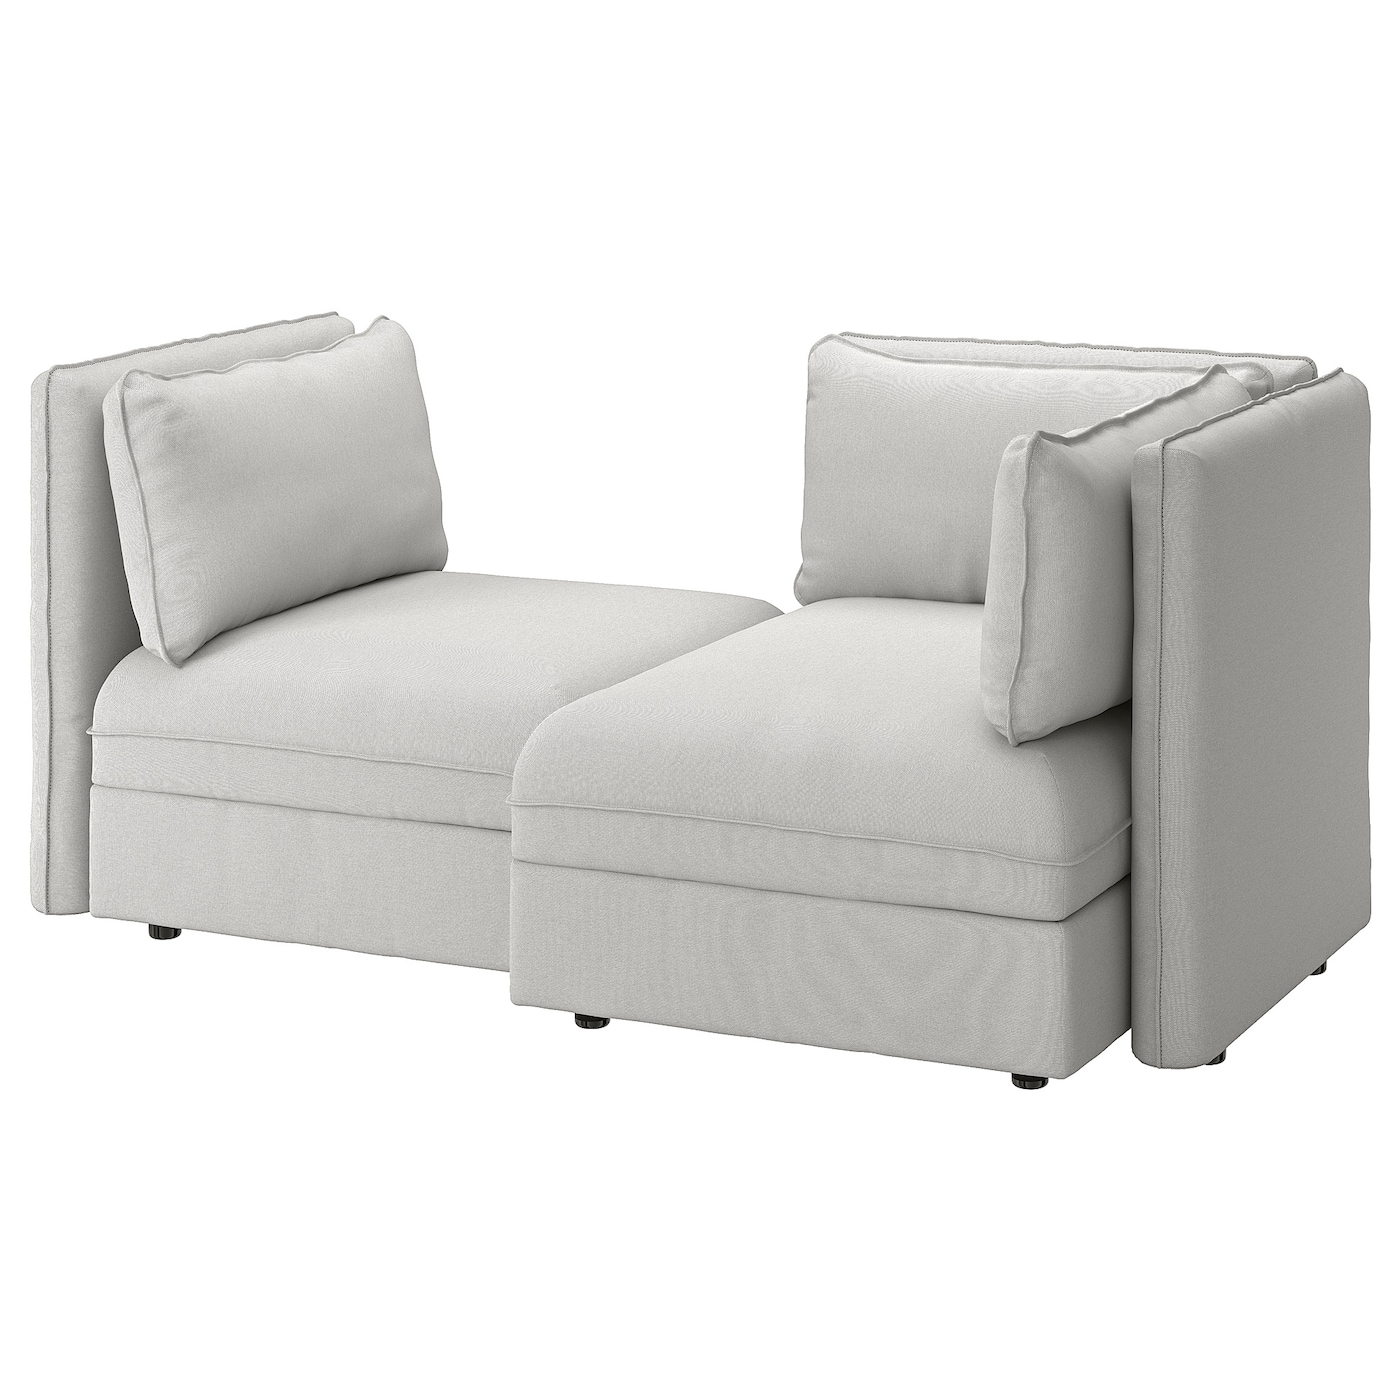 VALLENTUNA Modular loveseat - with storage, Orrsta light gray - IKEA